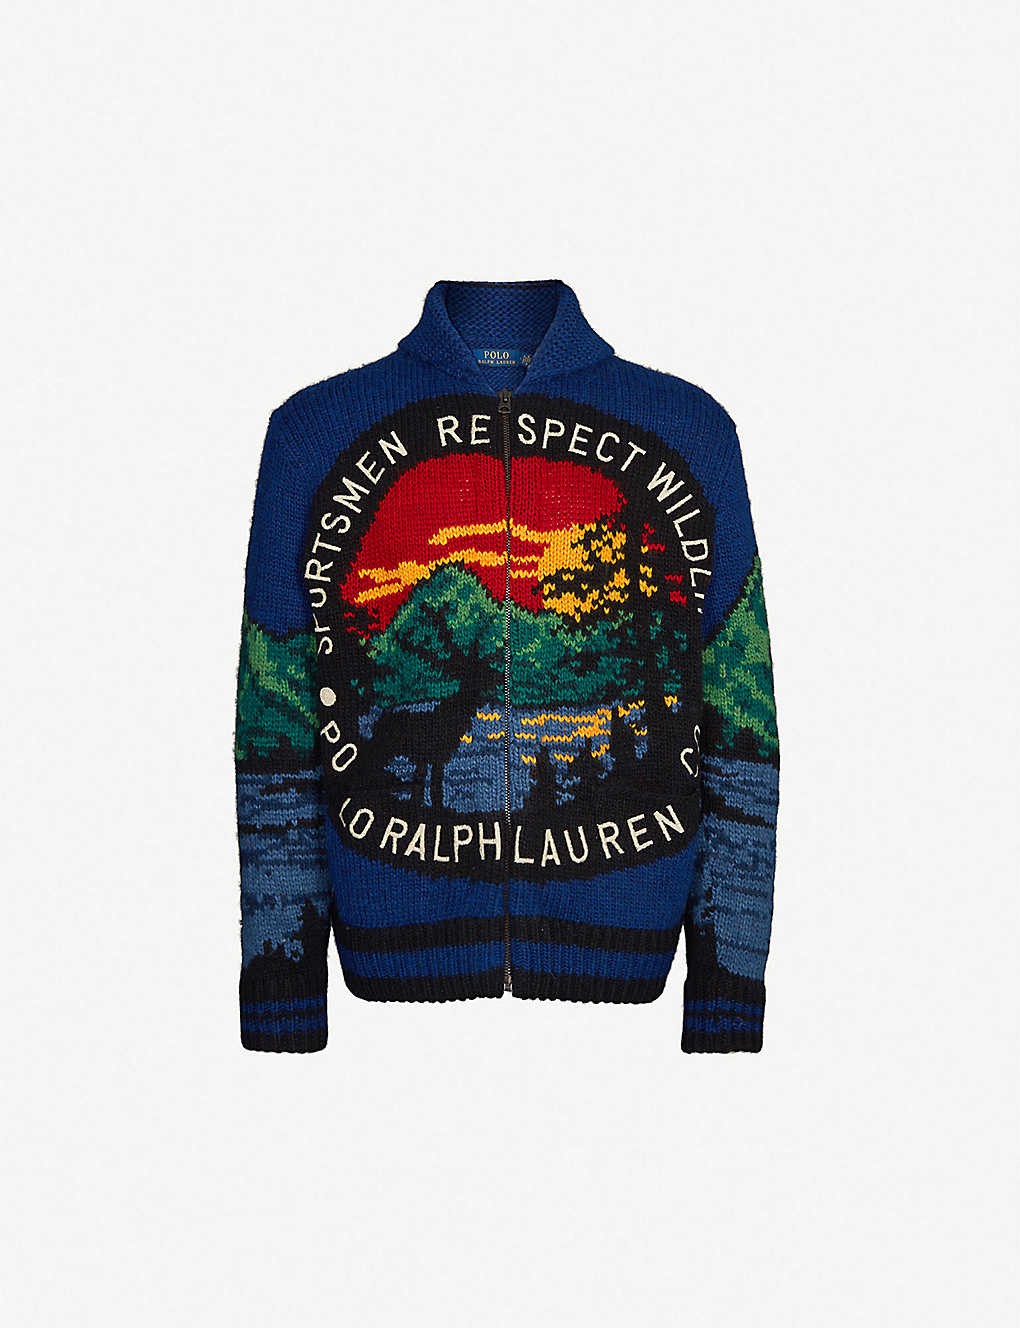 Polo Ralph Lauren Sportsmen Respect Wildlife Knitted Cardigan On Sale Stylaly